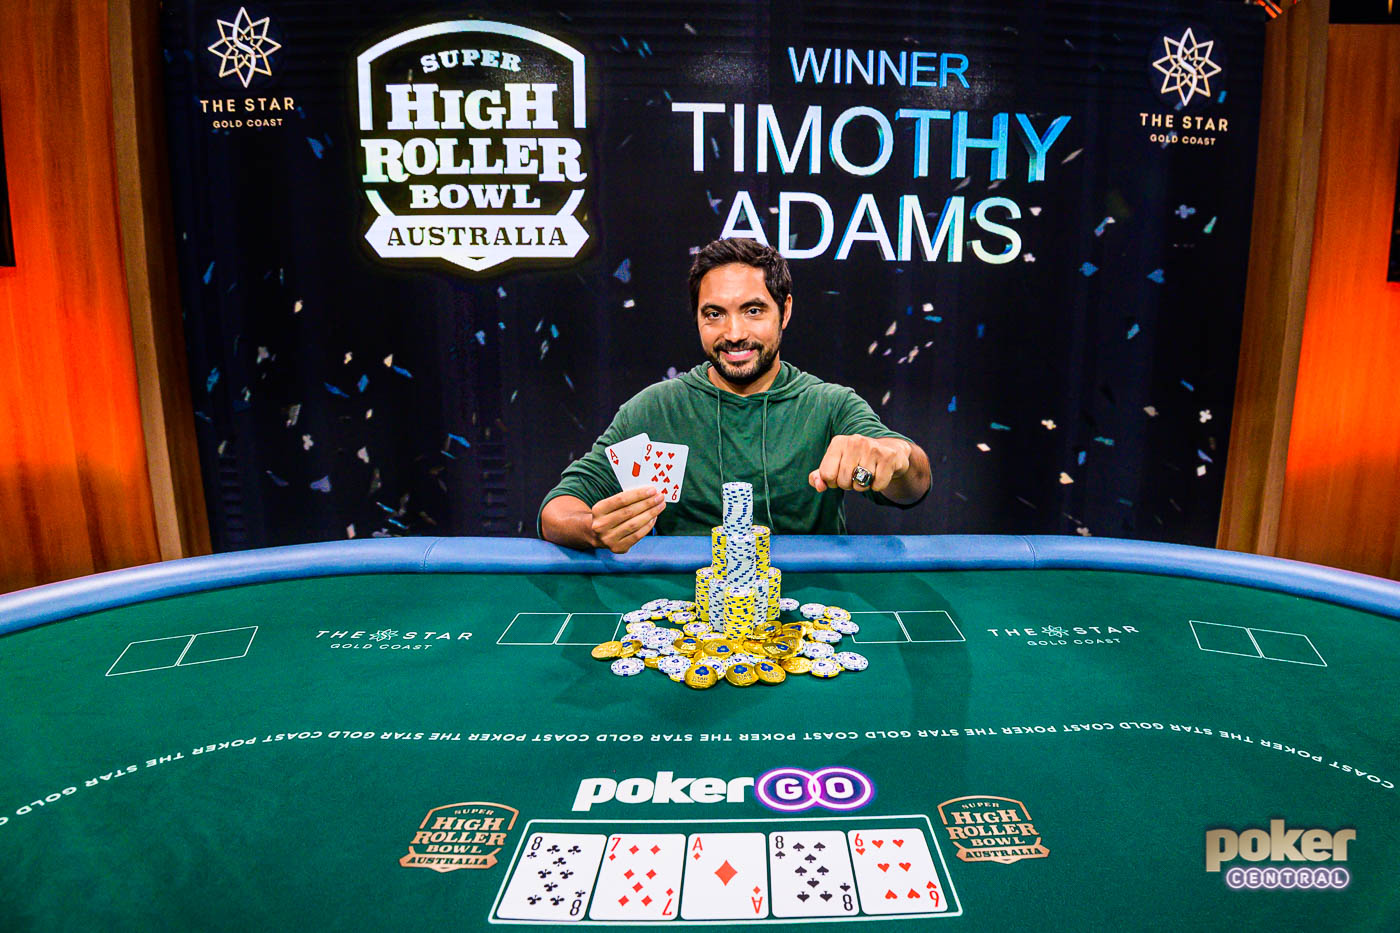 Timothy Adams wins inaugural Super High Roller Bowl Australia!